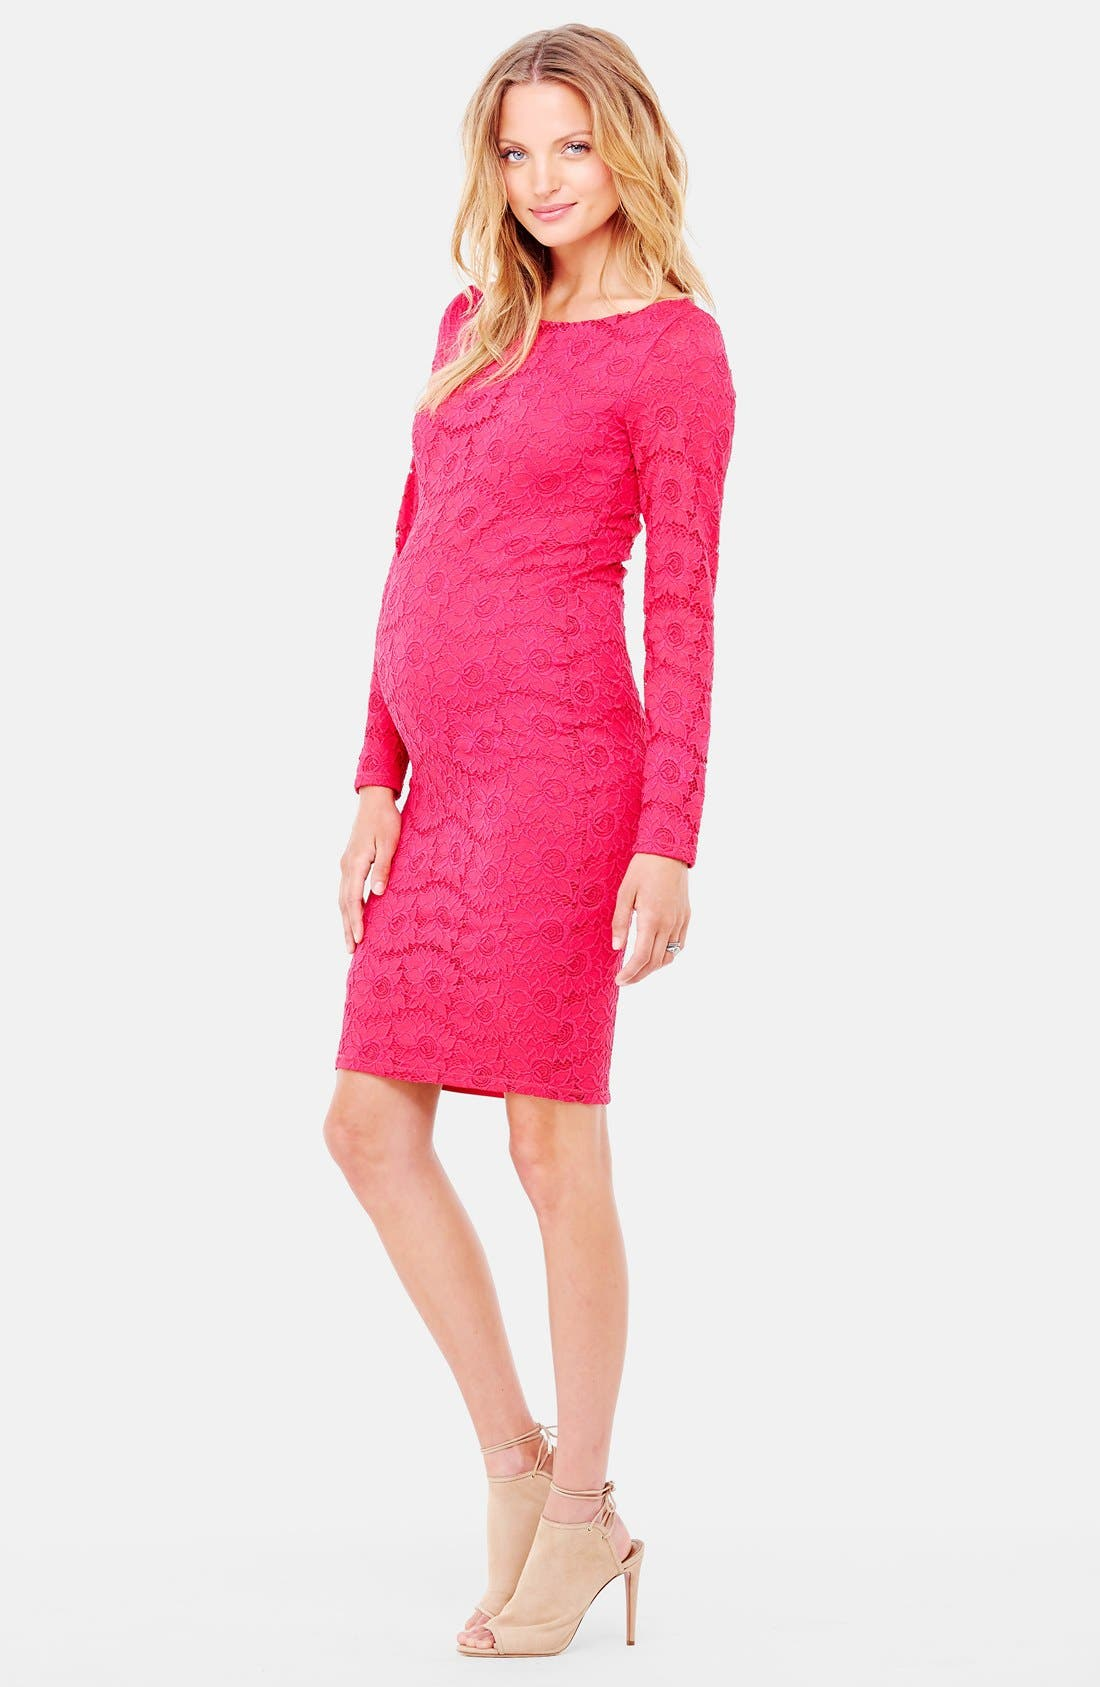 Womens maternity clothing nordstrom ombrellifo Image collections